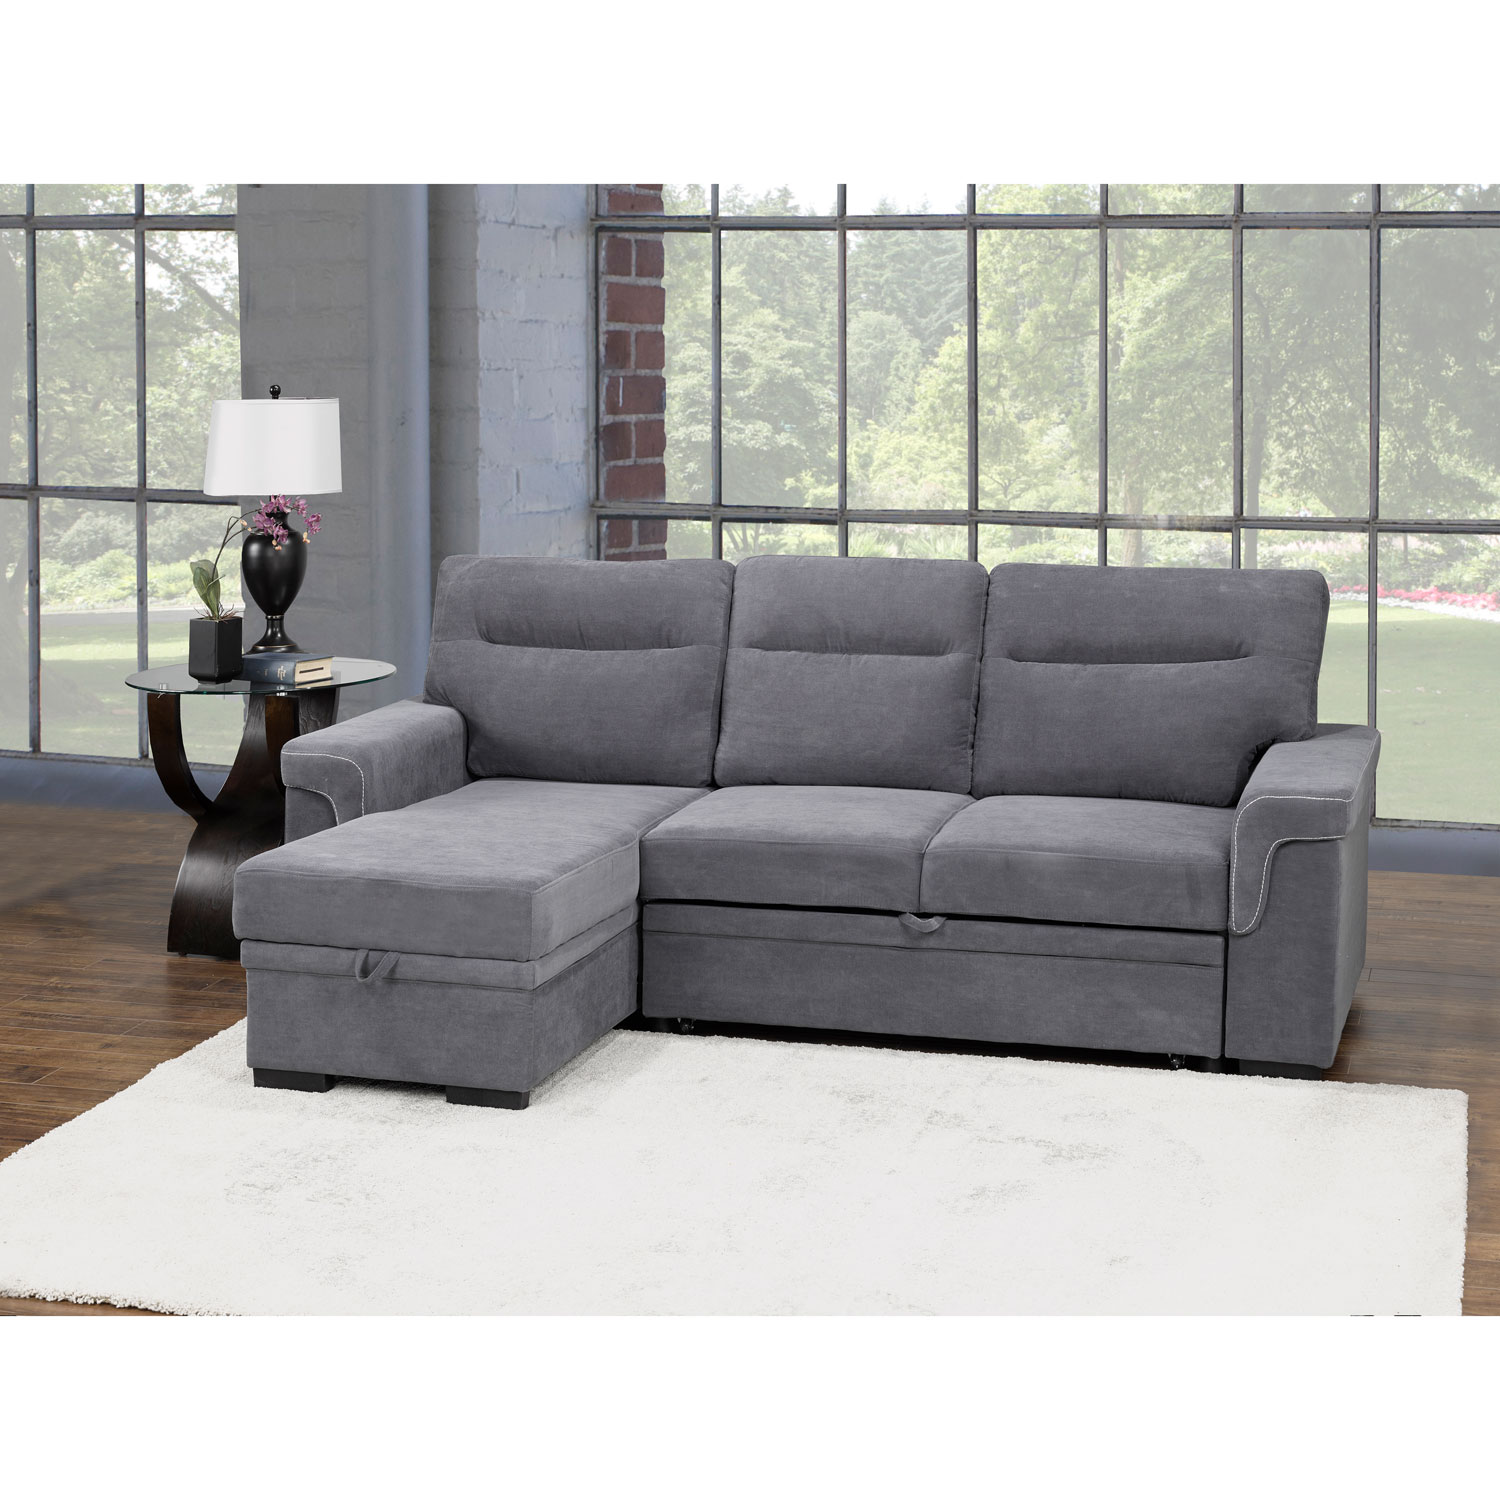 Almalfi Transitional 2 Piece Polyester Sectional Sofa Sleeper Double Grey Only At Best Buy Best Buy Canada